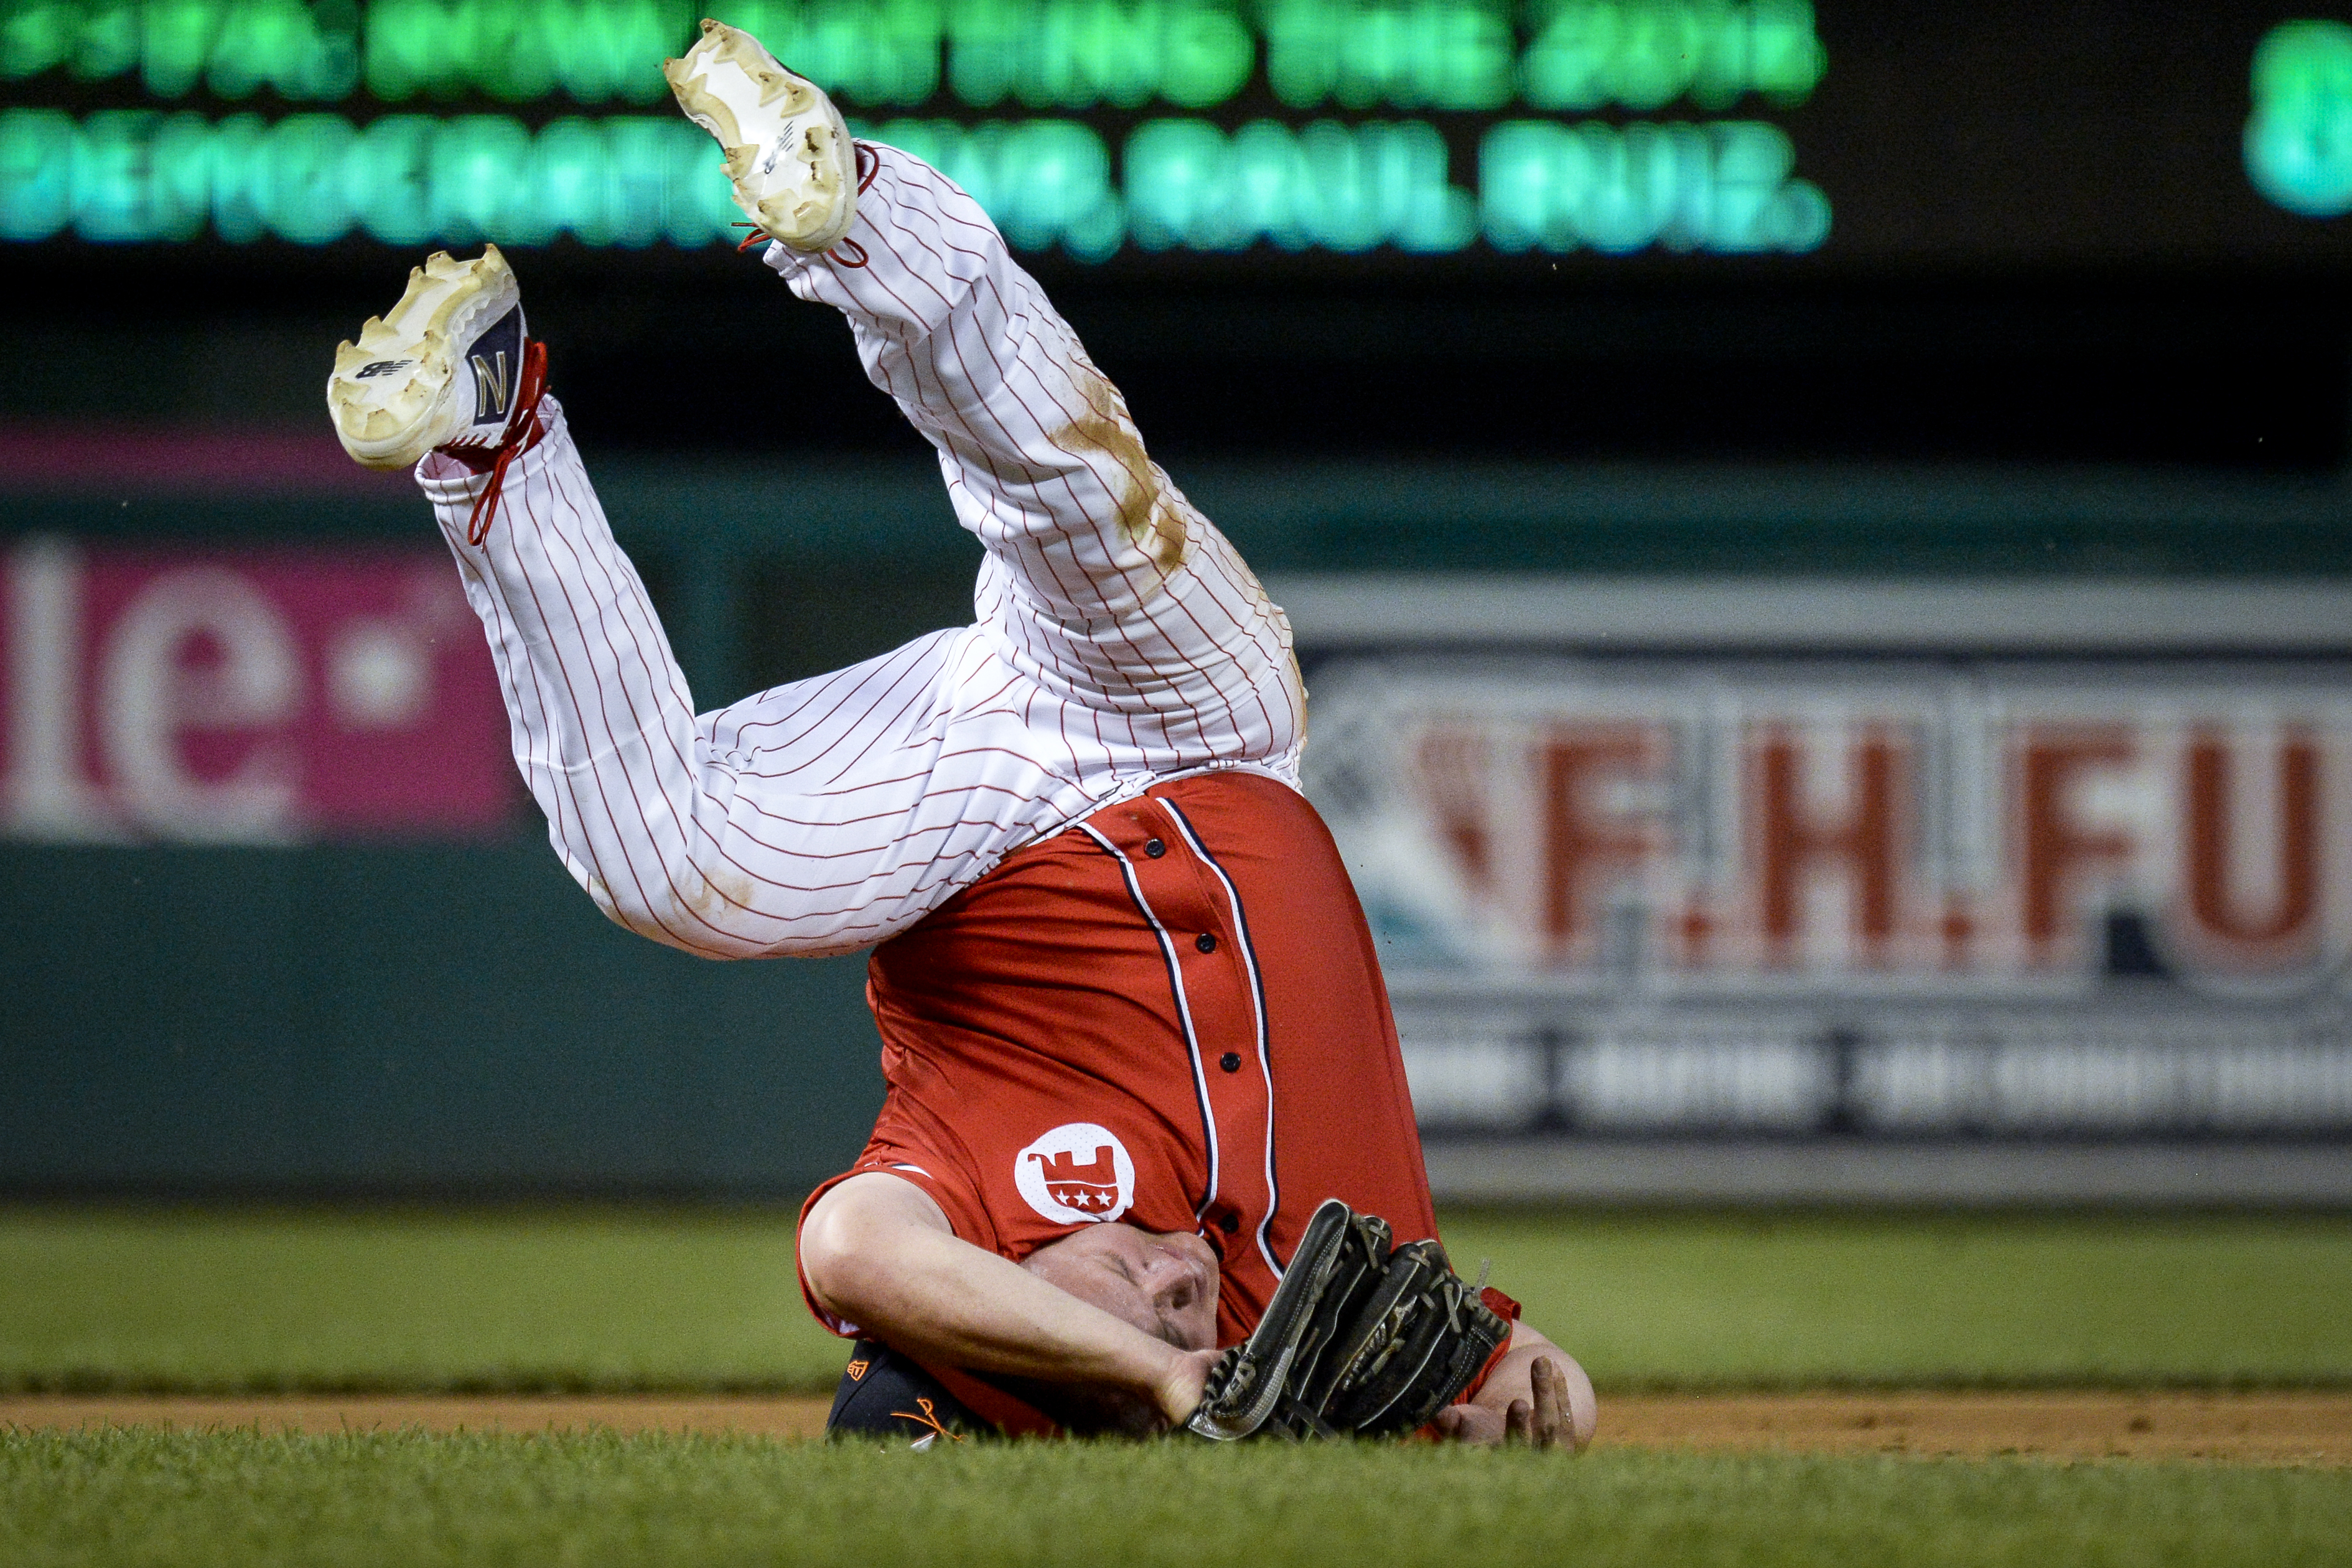 UNITED STATES - JUNE 26: Rep. Denver Riggleman, R-Va., rolls over on his head as he field a ground ball during the 58th annual Congressional Baseball Game at Nationals Park on Wednesday June 26, 2019. (Photo by Caroline Brehman/CQ Roll Call)